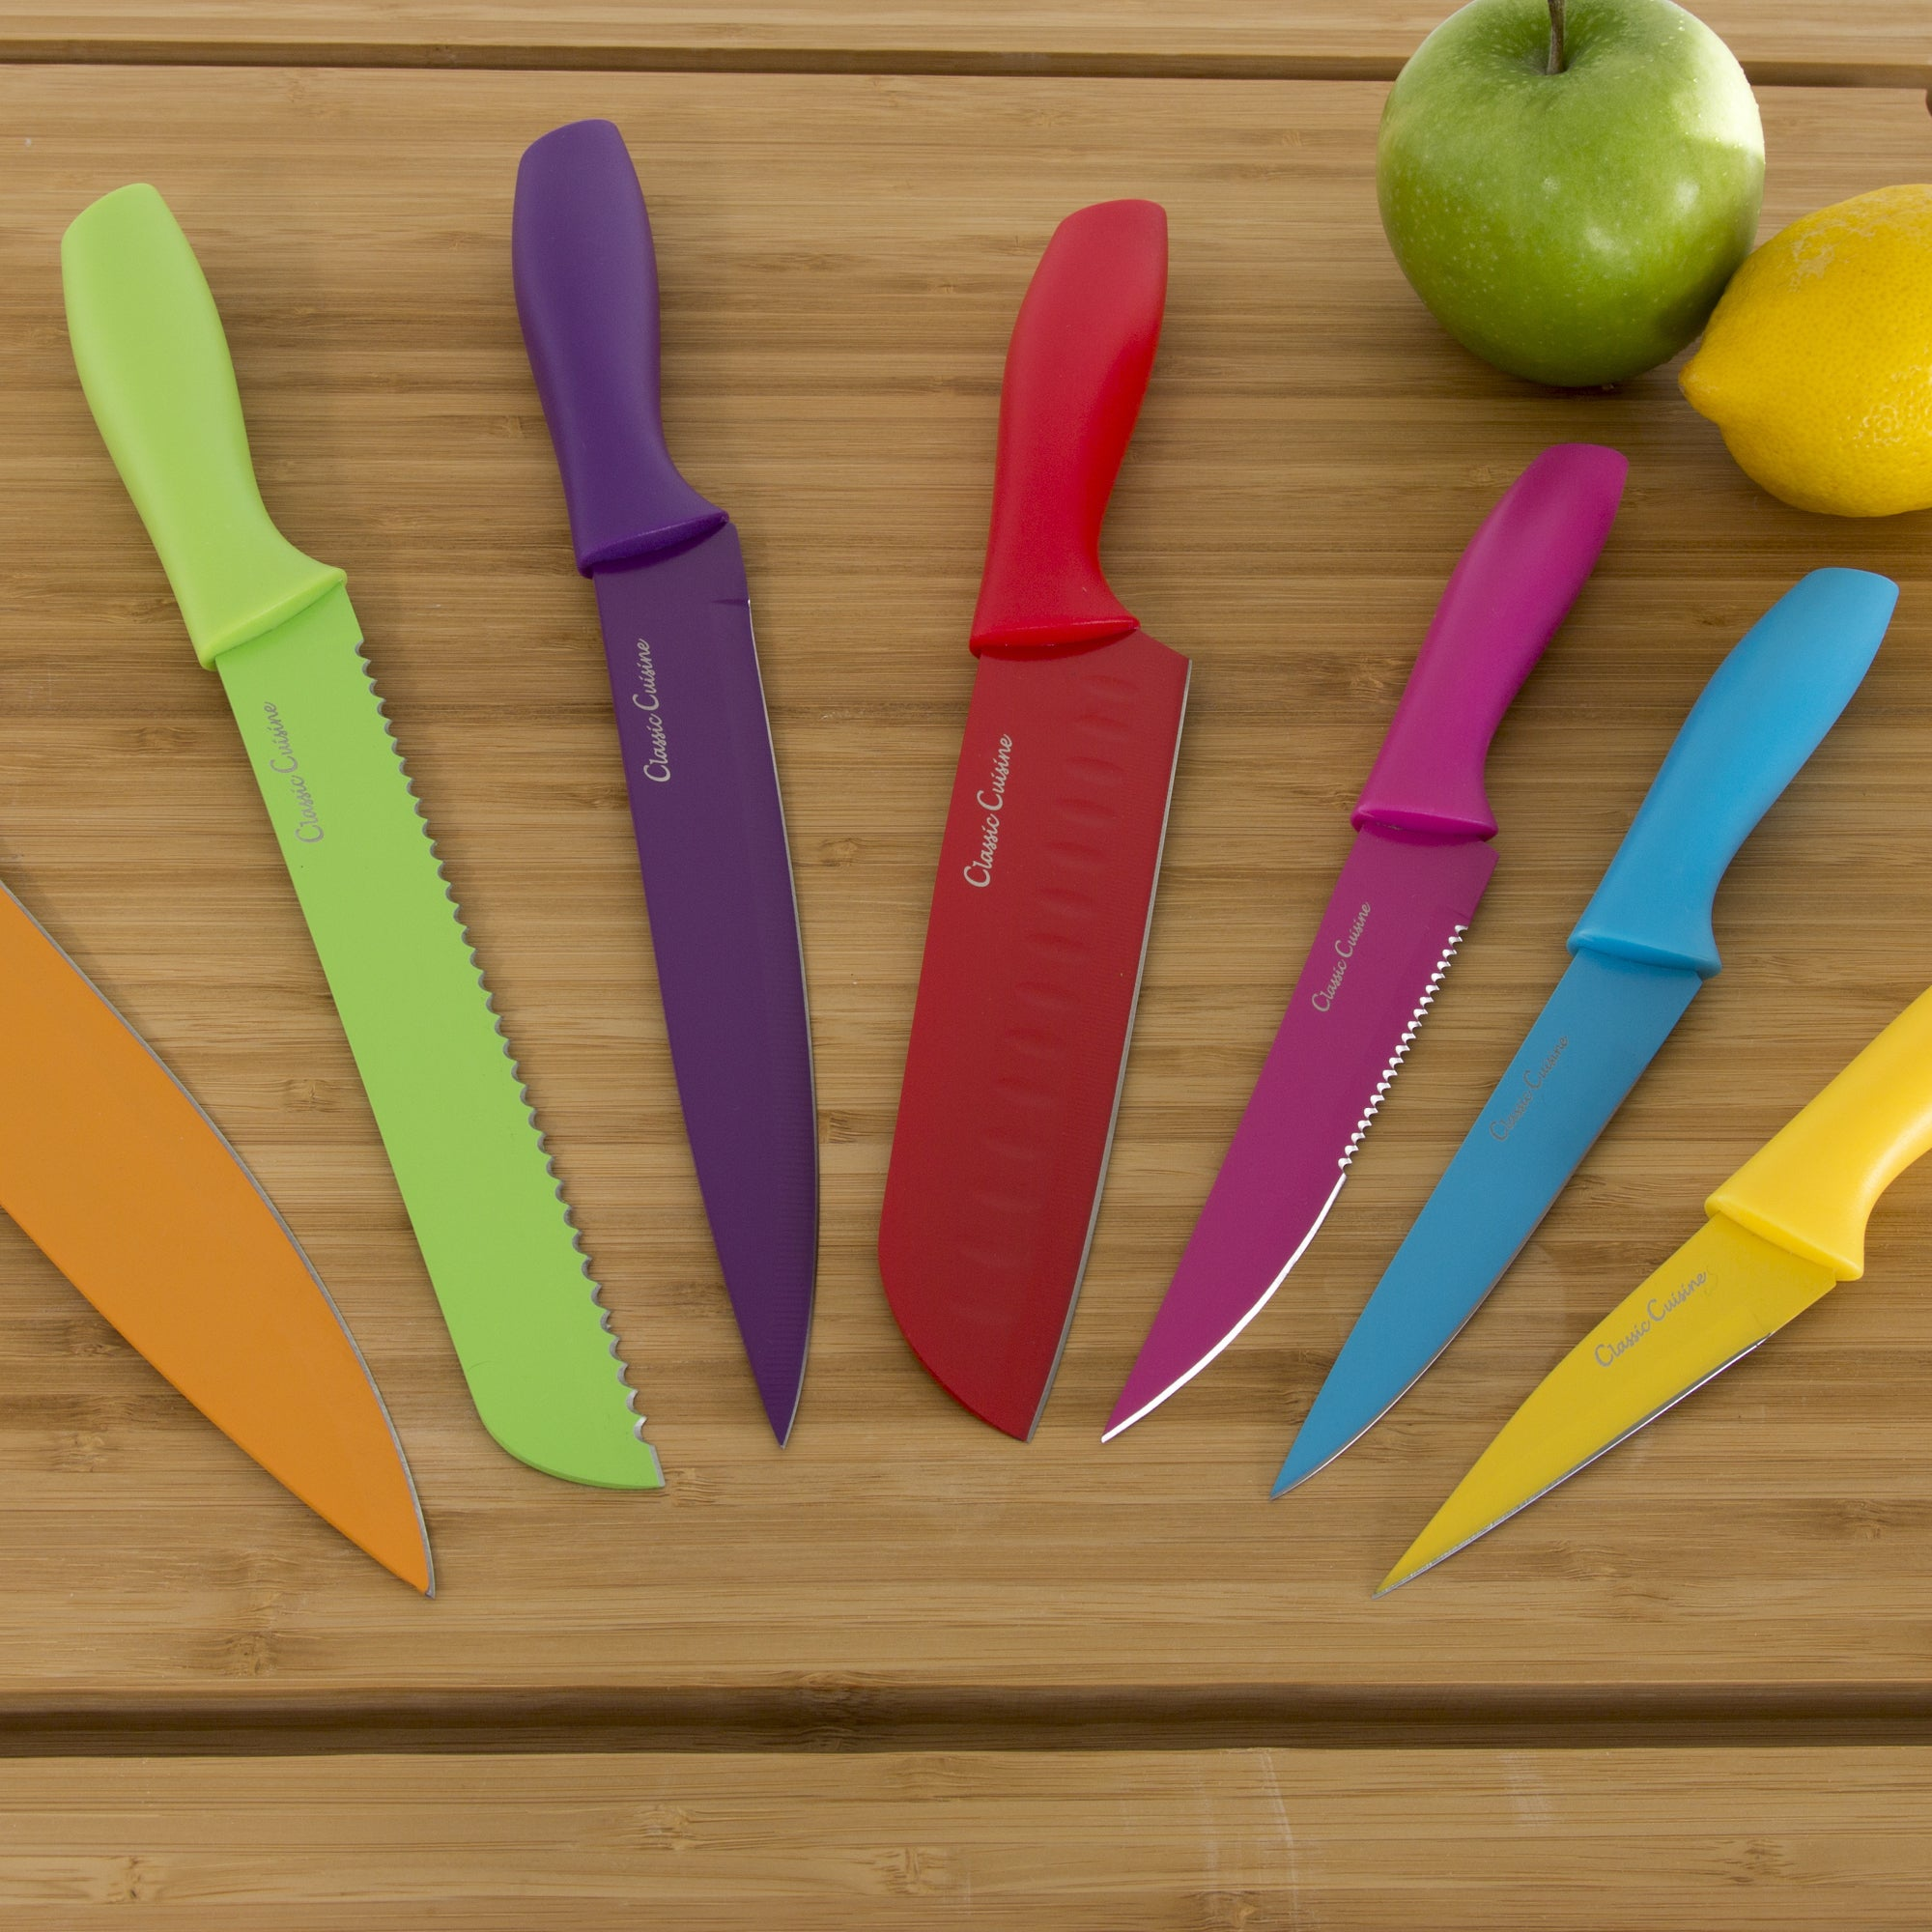 Superbe Shop Classic Cuisine 14 Piece Colored Knife Set With Sheaths   Pro Grade    On Sale   Free Shipping On Orders Over $45   Overstock.com   13550540